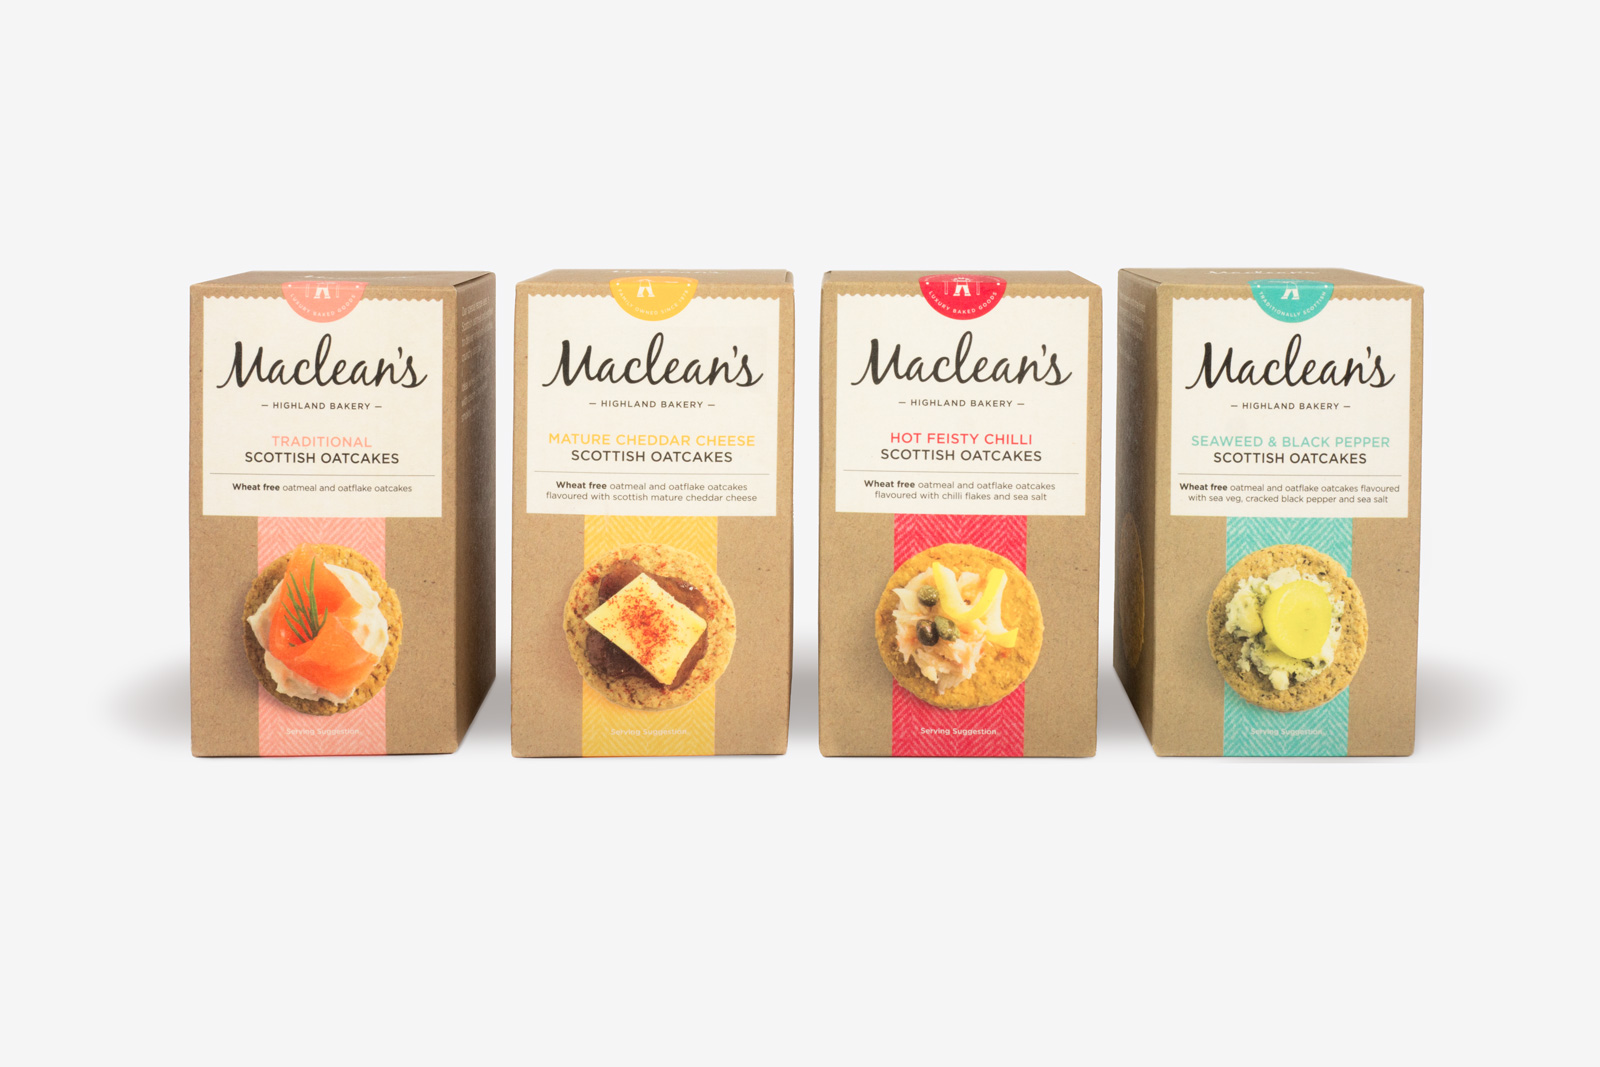 ostreet-macleans-packaging-112345